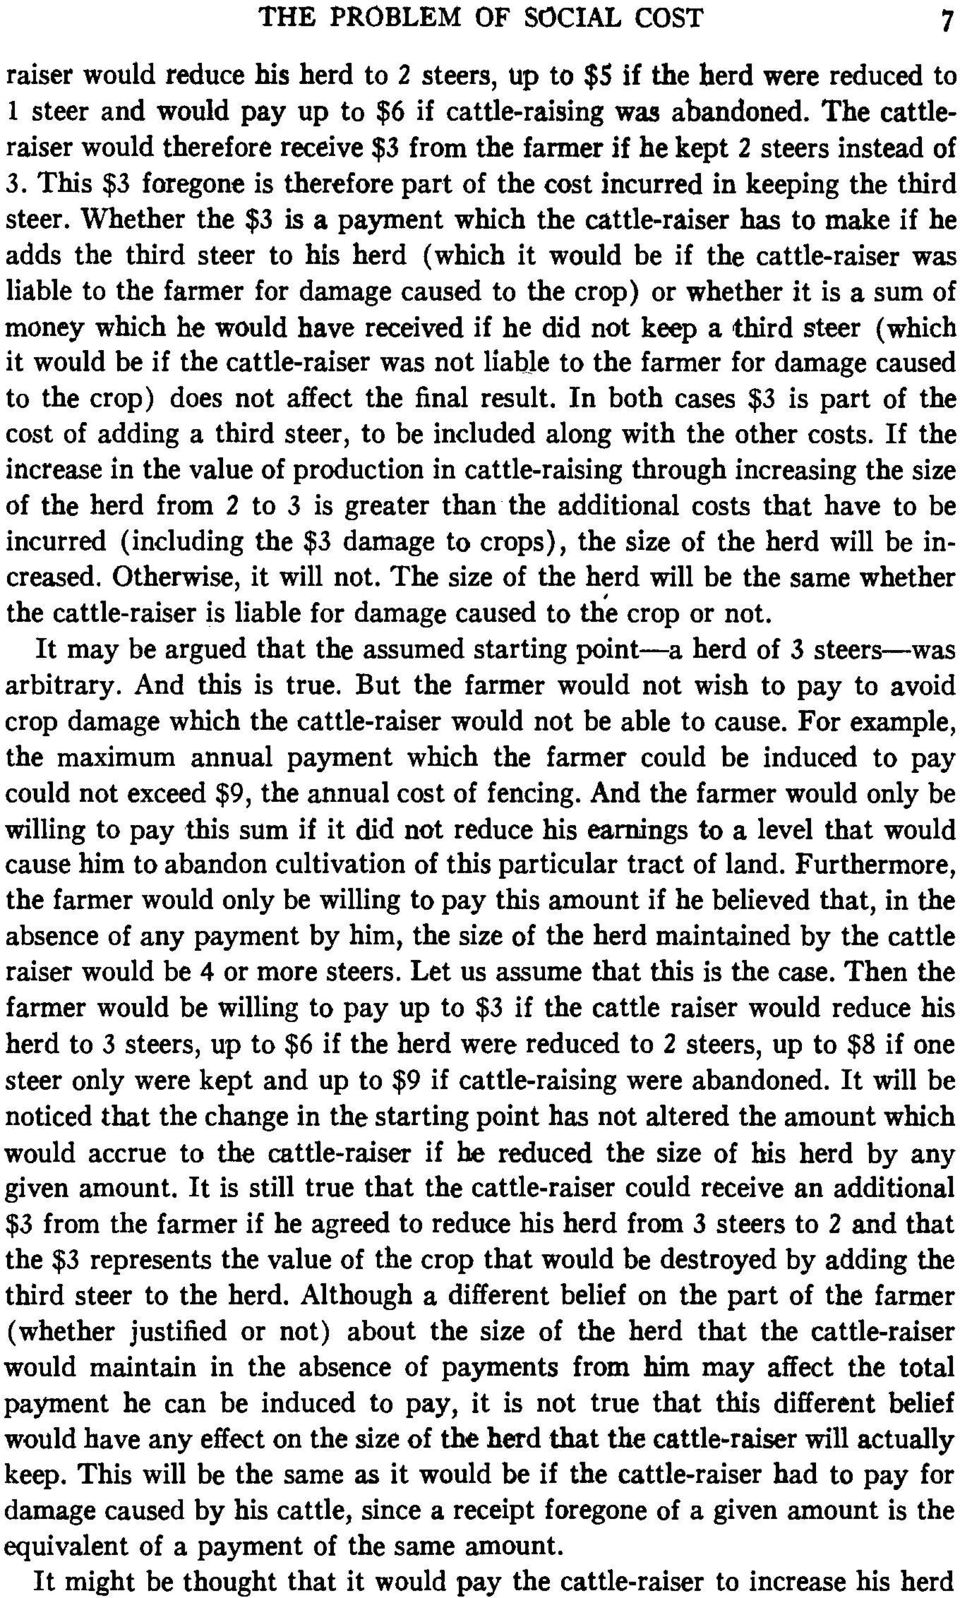 Whether the $3 is a payment which the cattle-raiser has to make if he adds the third steer to his herd (which it would be if the cattle-raiser was liable to the farmer for damage caused to the crop)